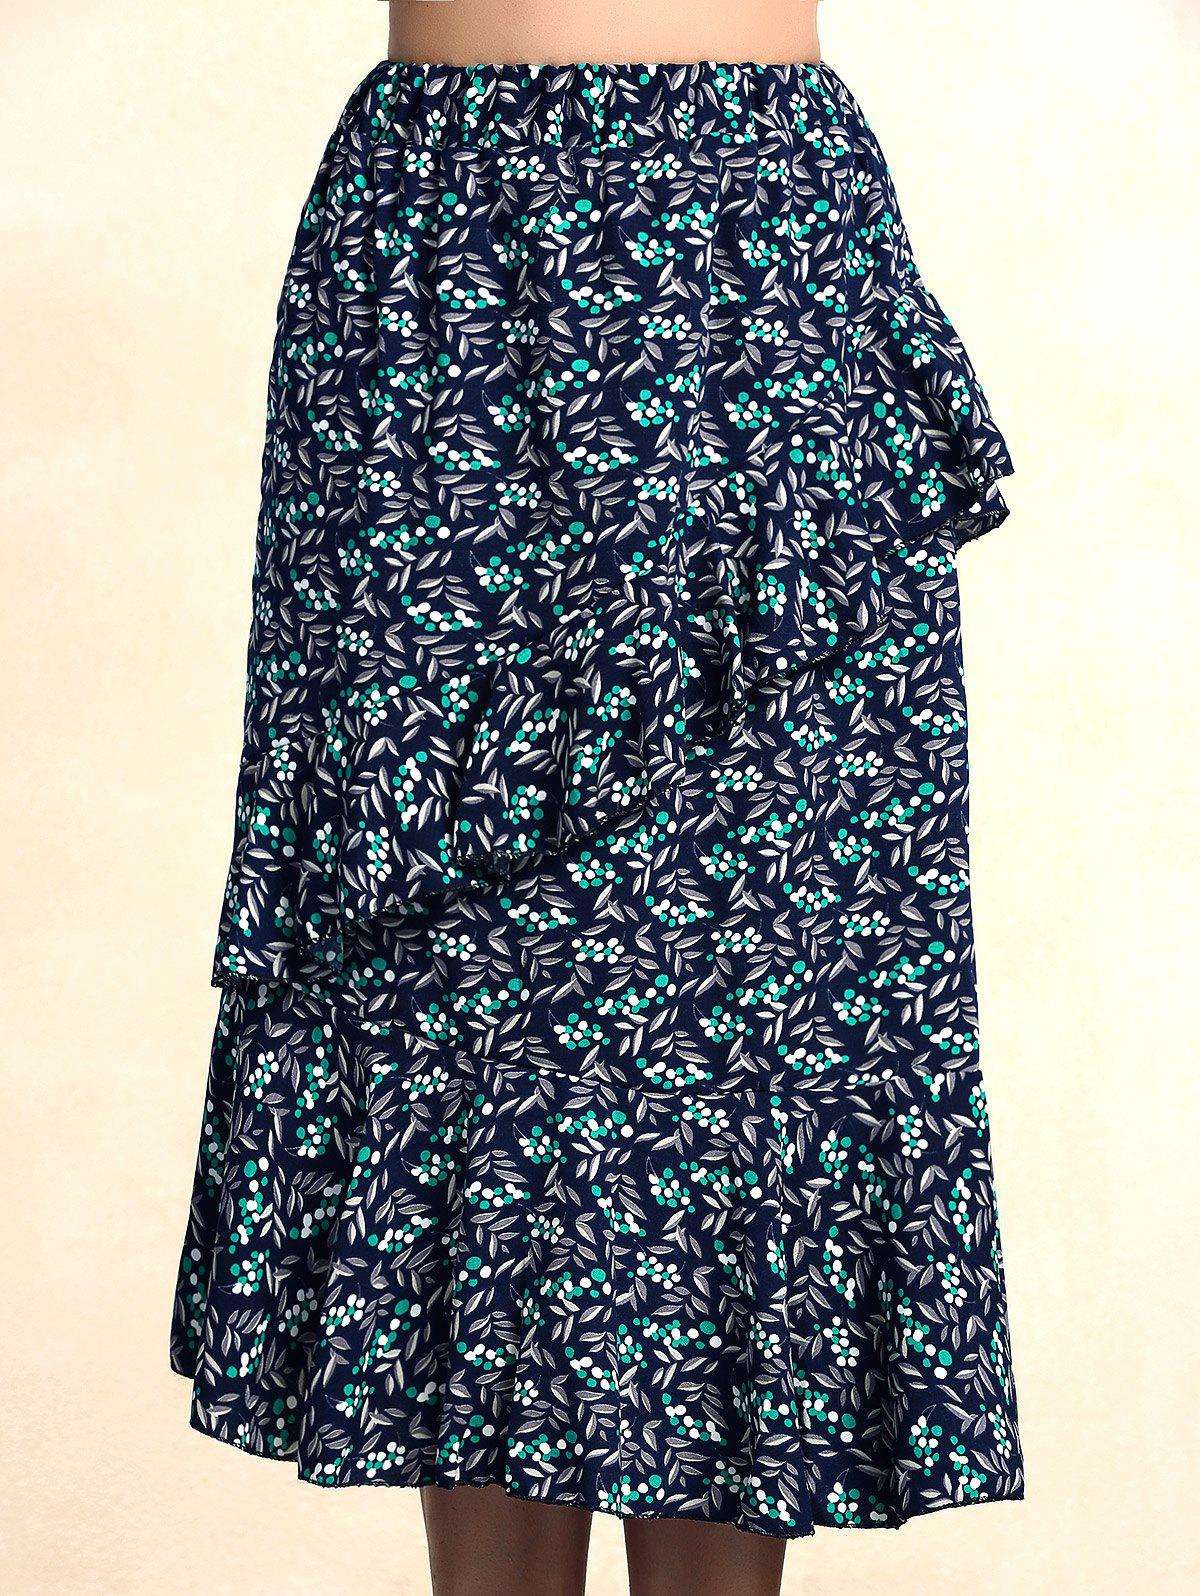 Charming Stretchy Print Women's Skirt - ONE SIZE(FIT SIZE XS TO M) COLORMIX